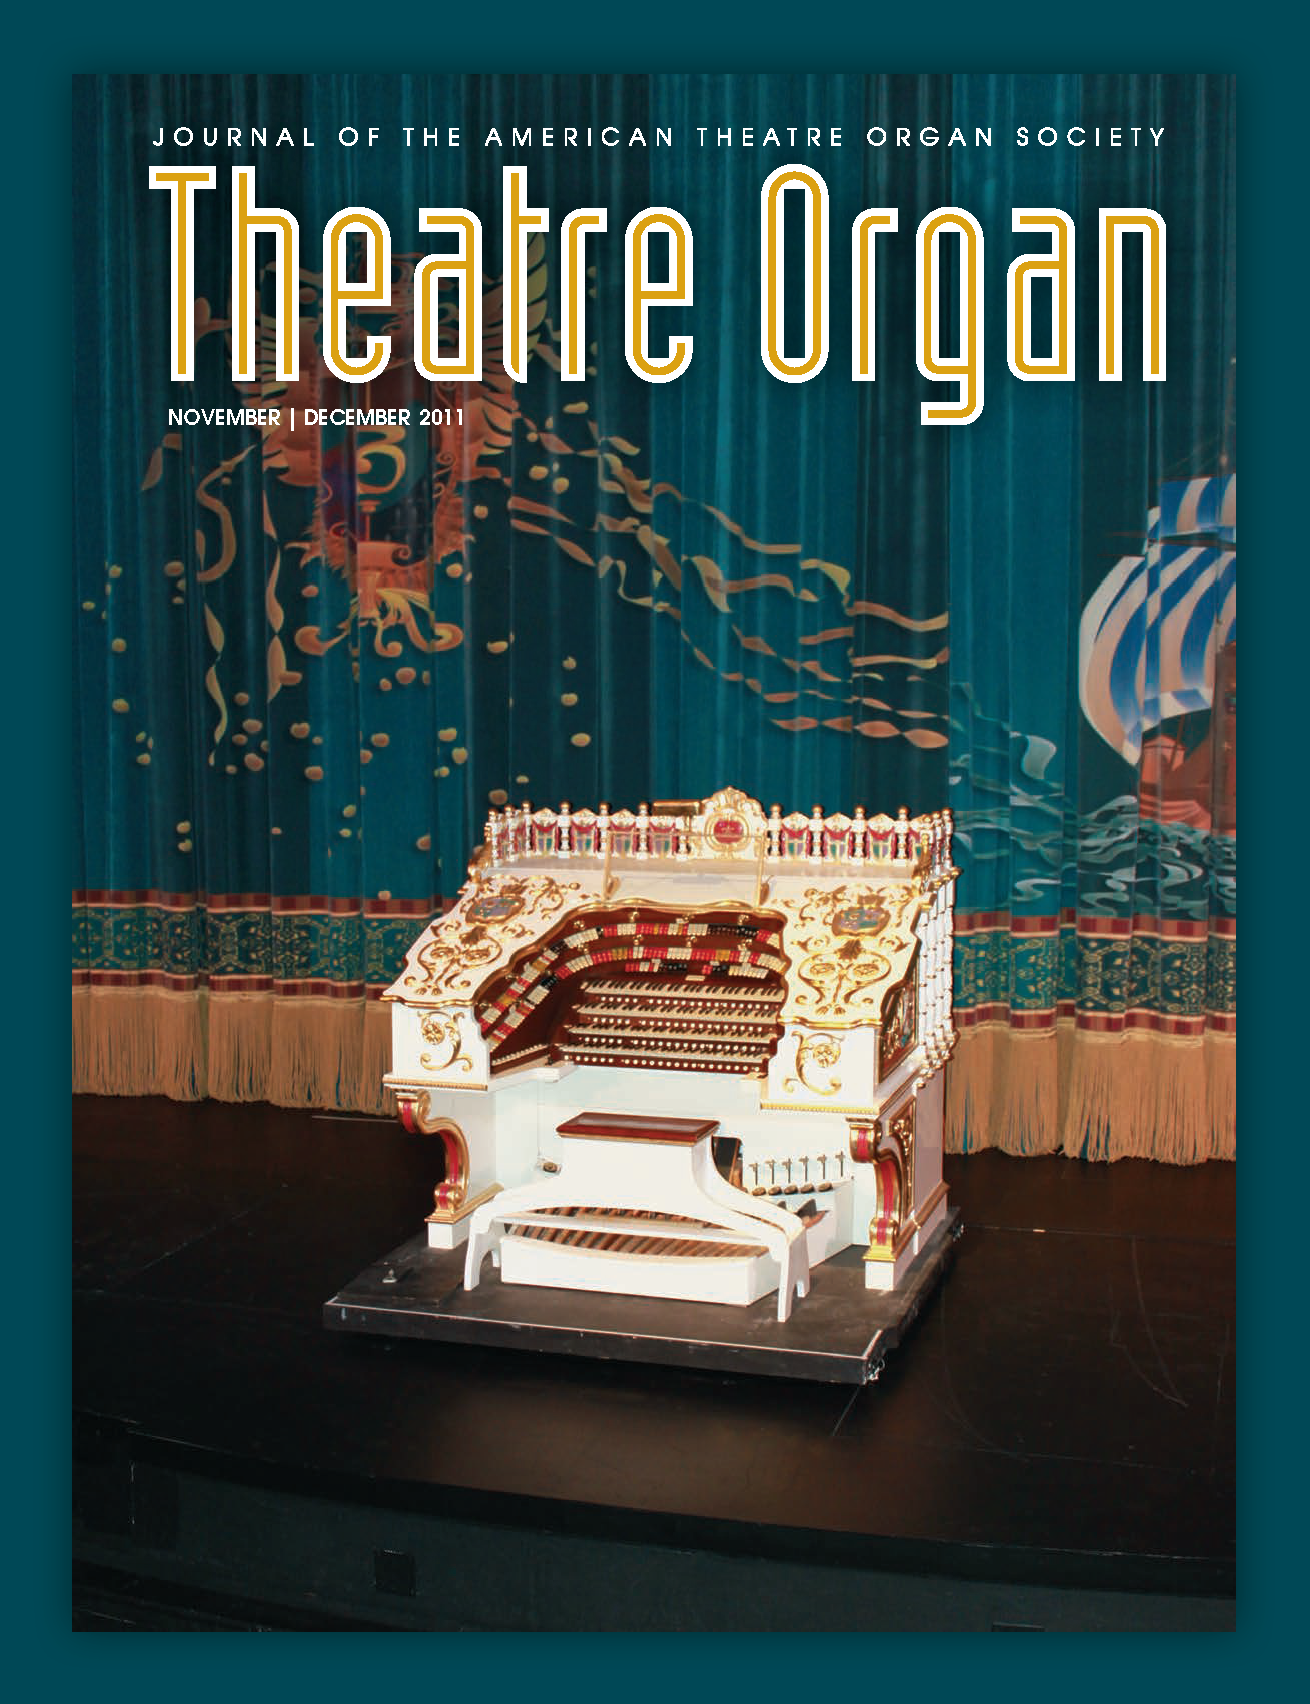 Theatre Organ, November - December 2011, Volume 53, Number 6